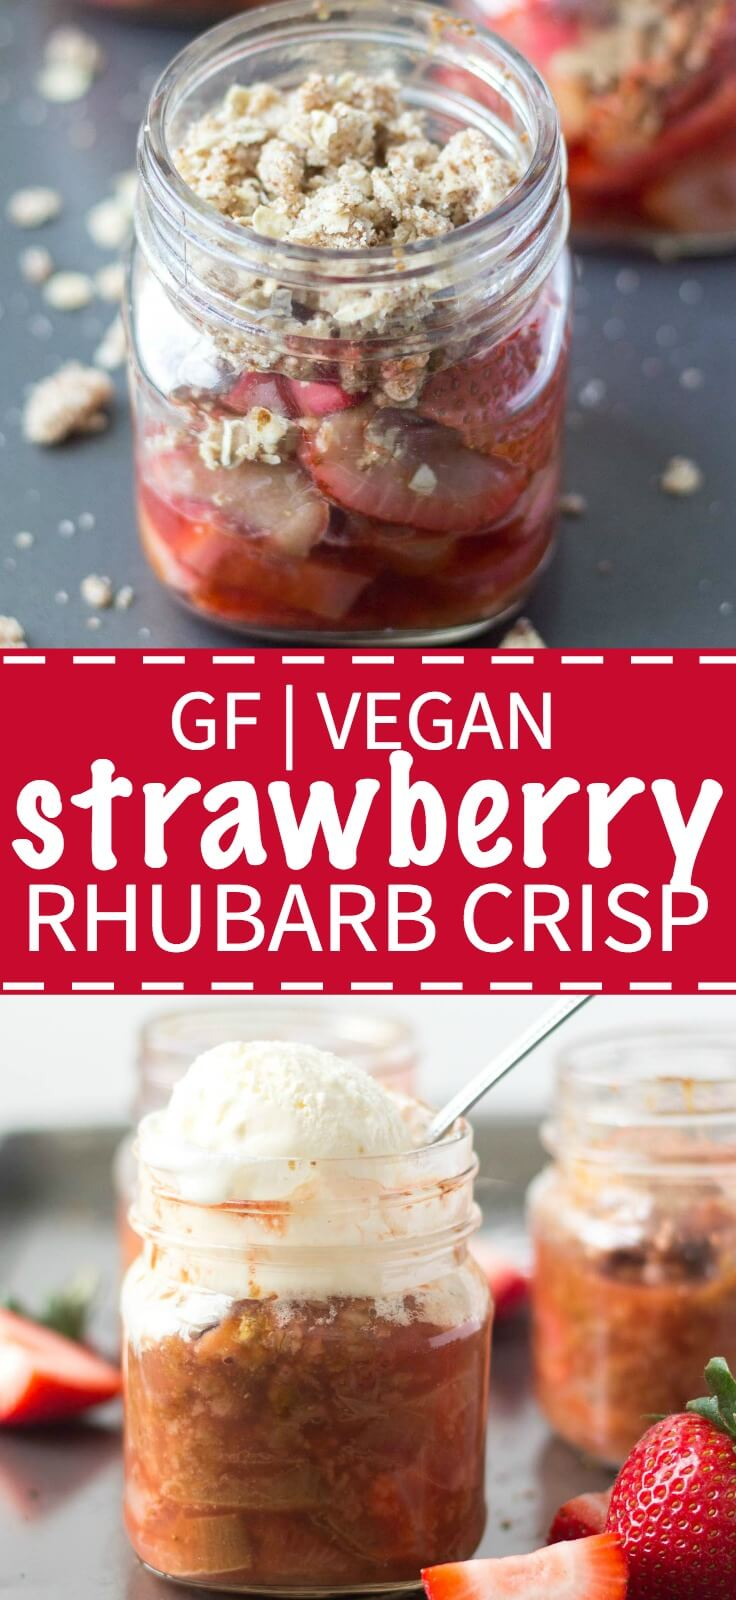 You will love this strawberry rhubarb crisp for all it's summertime flavor, but you will also love that it's vegan and gluten free and has no refined sugar!